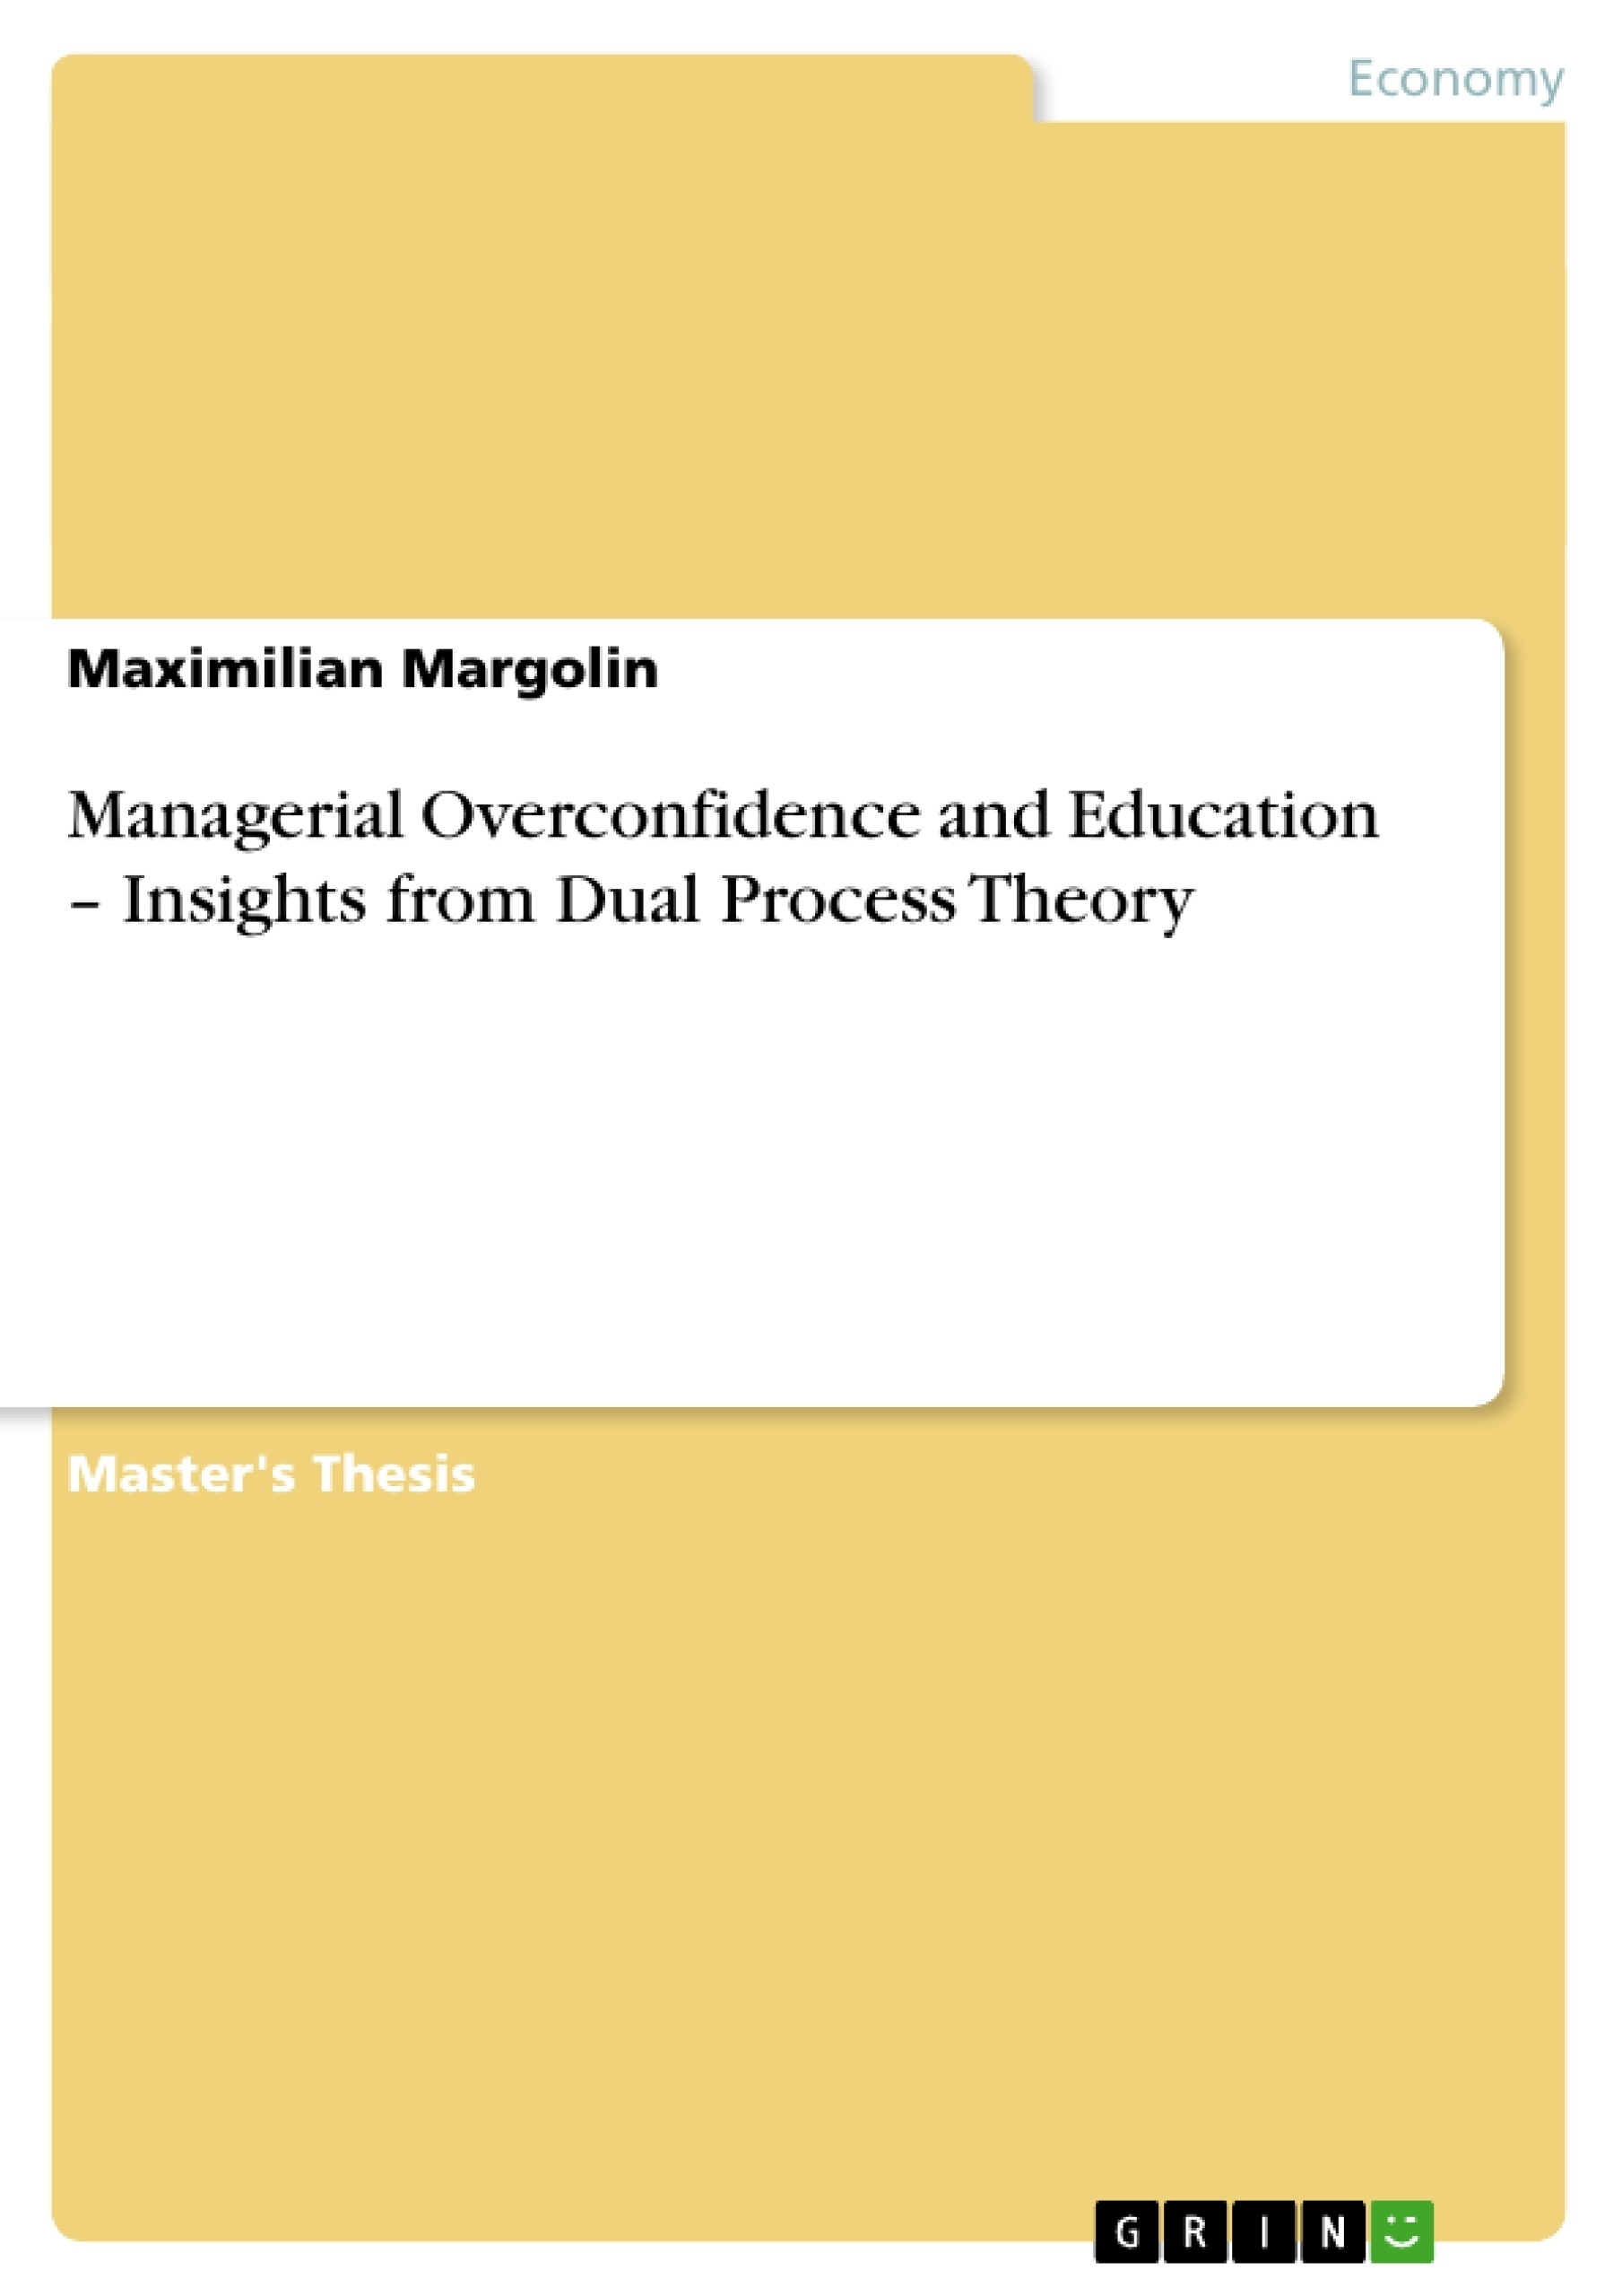 Title: Managerial Overconfidence and Education – Insights from Dual Process Theory